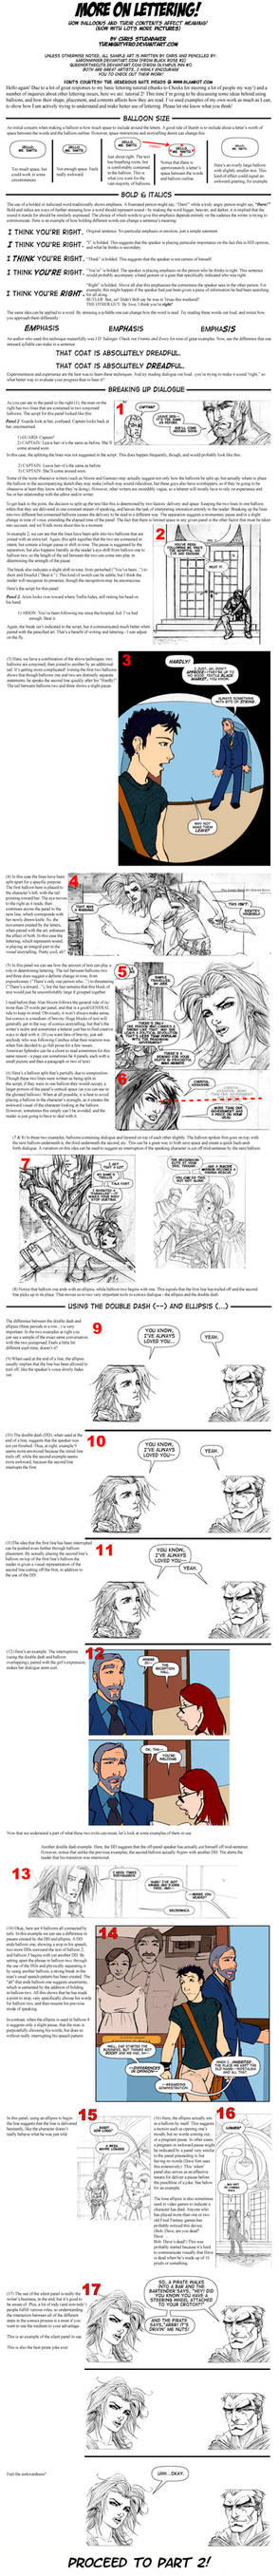 Comics Lettering Theory Part 1